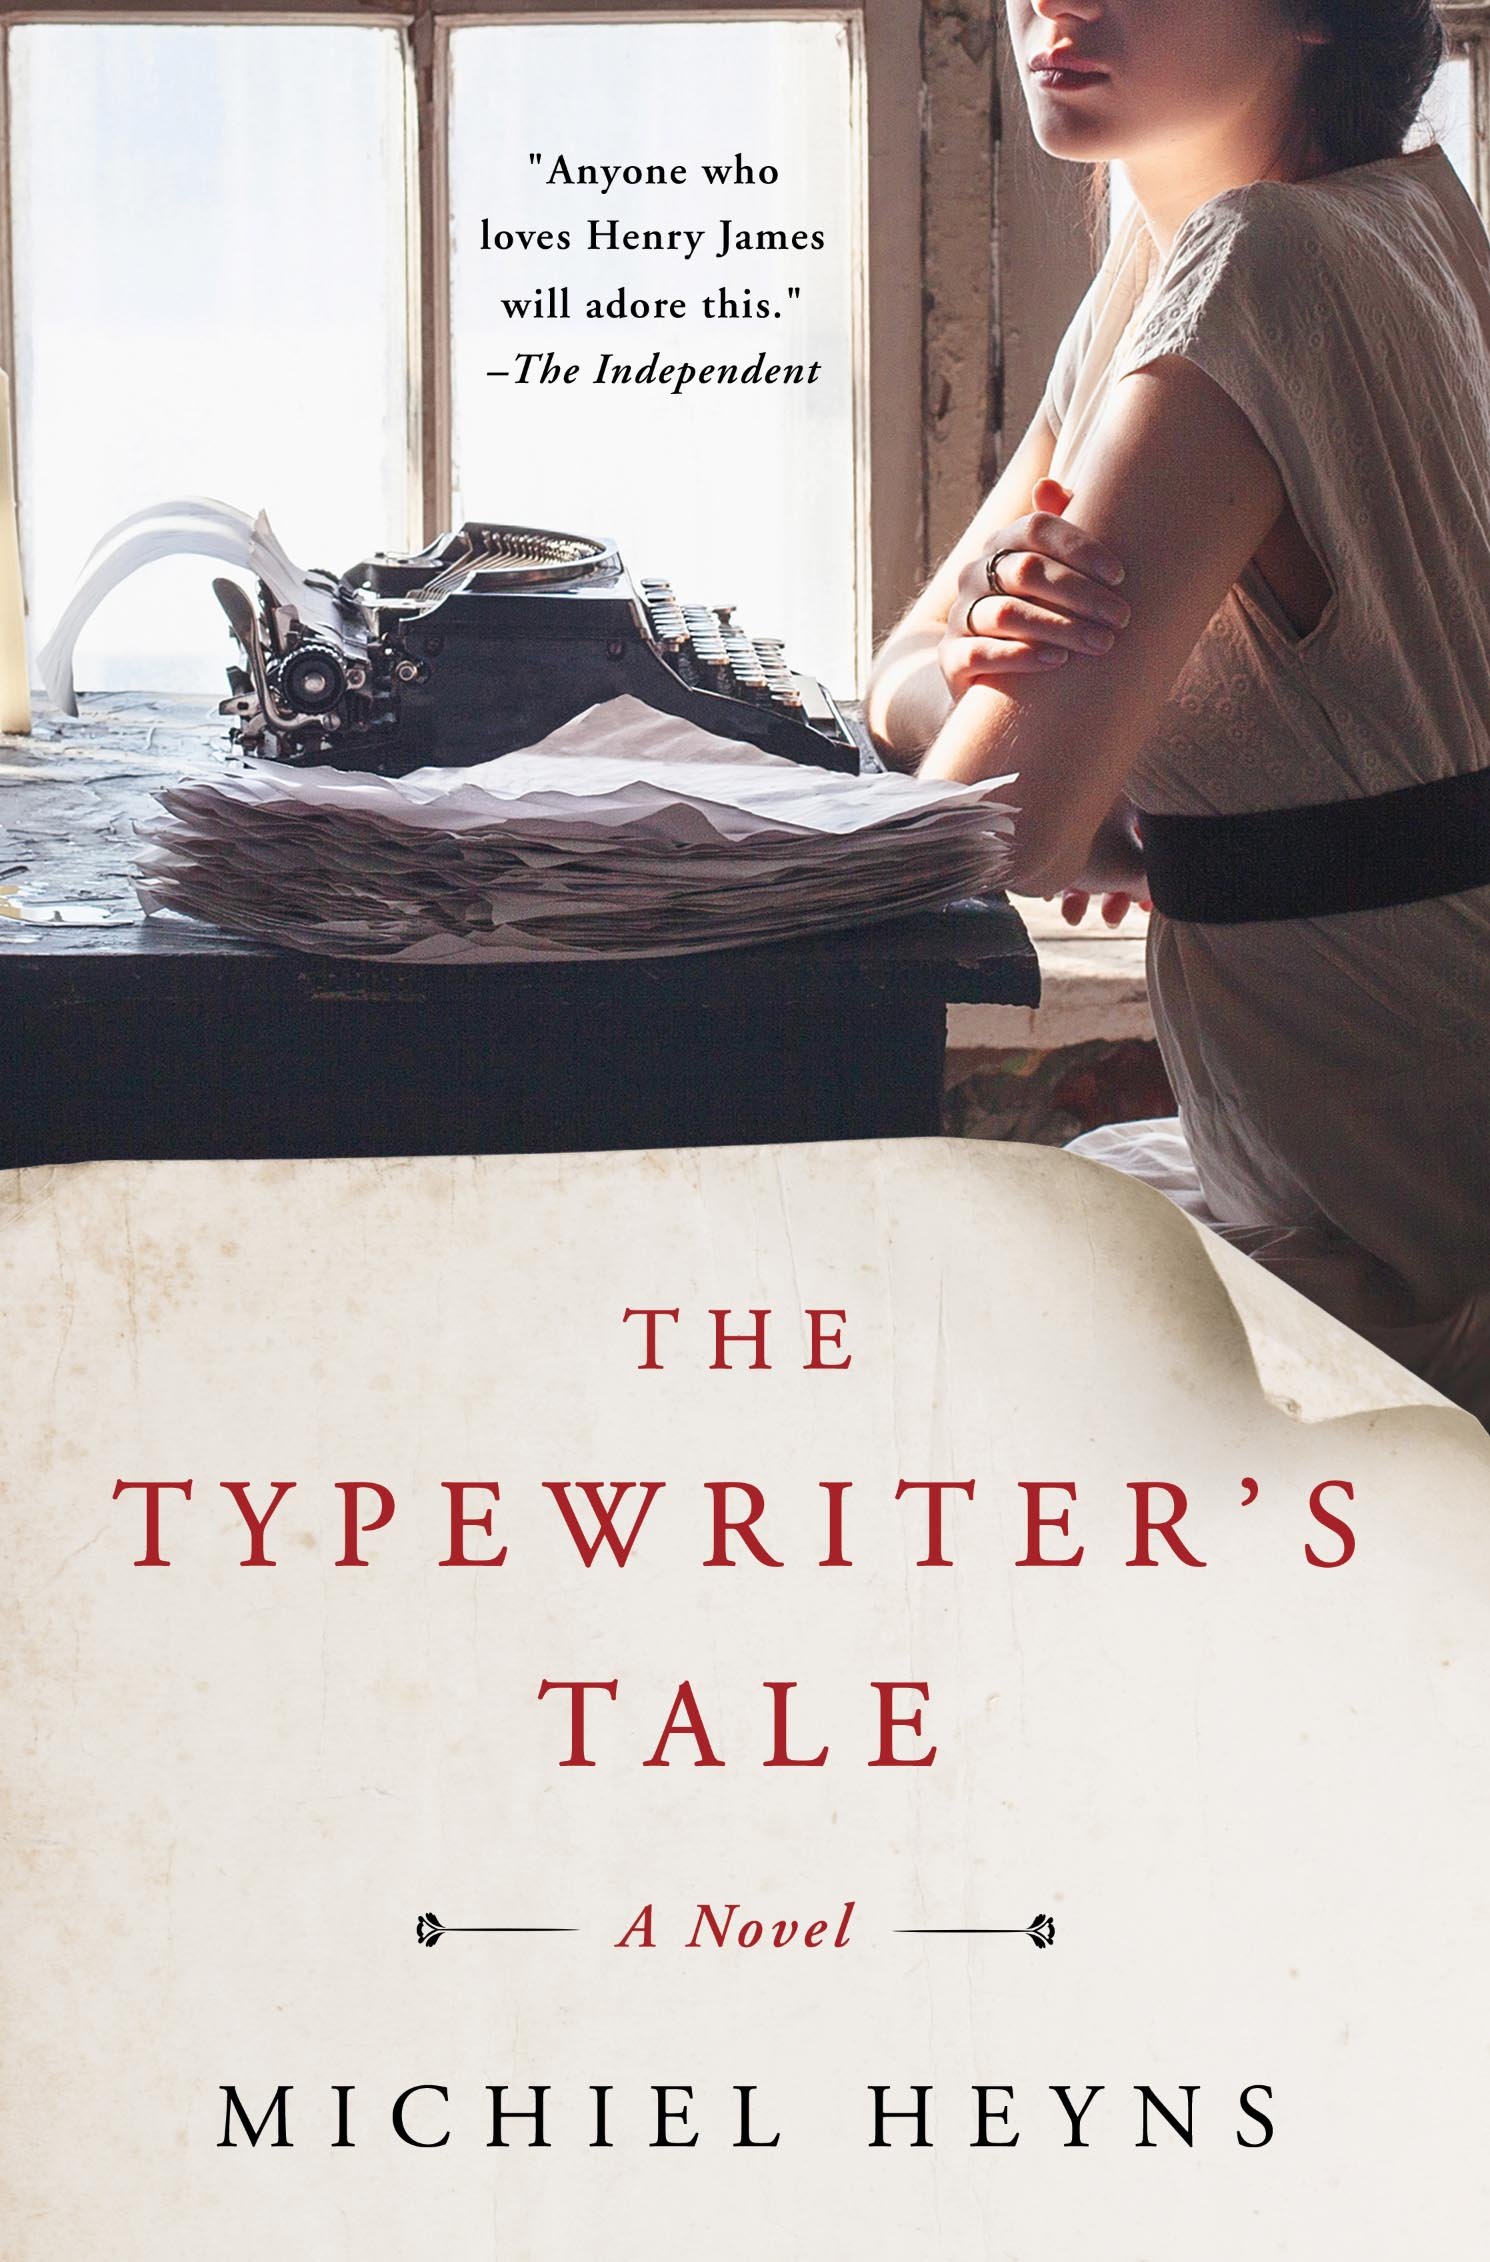 THE TYPEWRITER'S TALE  Literary fiction, 233 pages Freight (UK) , 2016 St Martin's Press (US), 2017 Jonathan Ball (South Africa) - November 2005  Shortlisted for the Commonwealth Prize Africa Region 2006 Shortlisted for the Herman Charles Bosman Prize in South Africa Shortlisted for the Commonwealth Prize  Frieda Worth is Henry James' fictional typewriter, caught up in the friendships and rivalries at James' house in Rye.